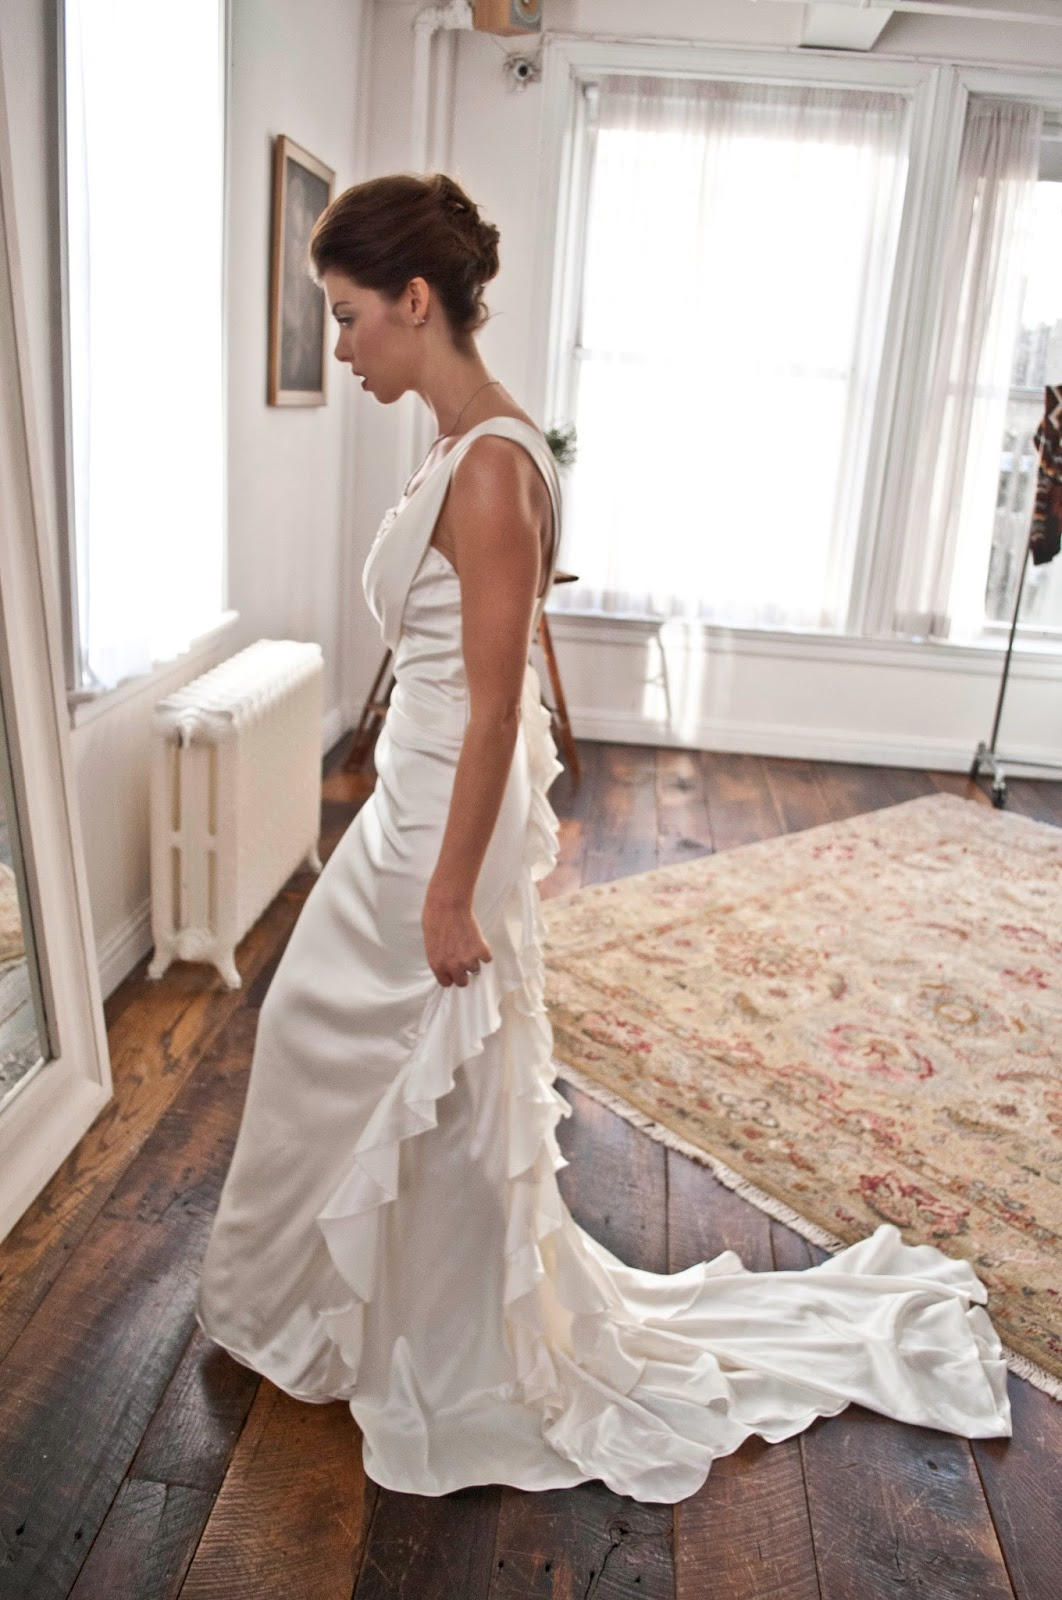 A Model Wedding, dress touch ups in loft full length mirror in profile